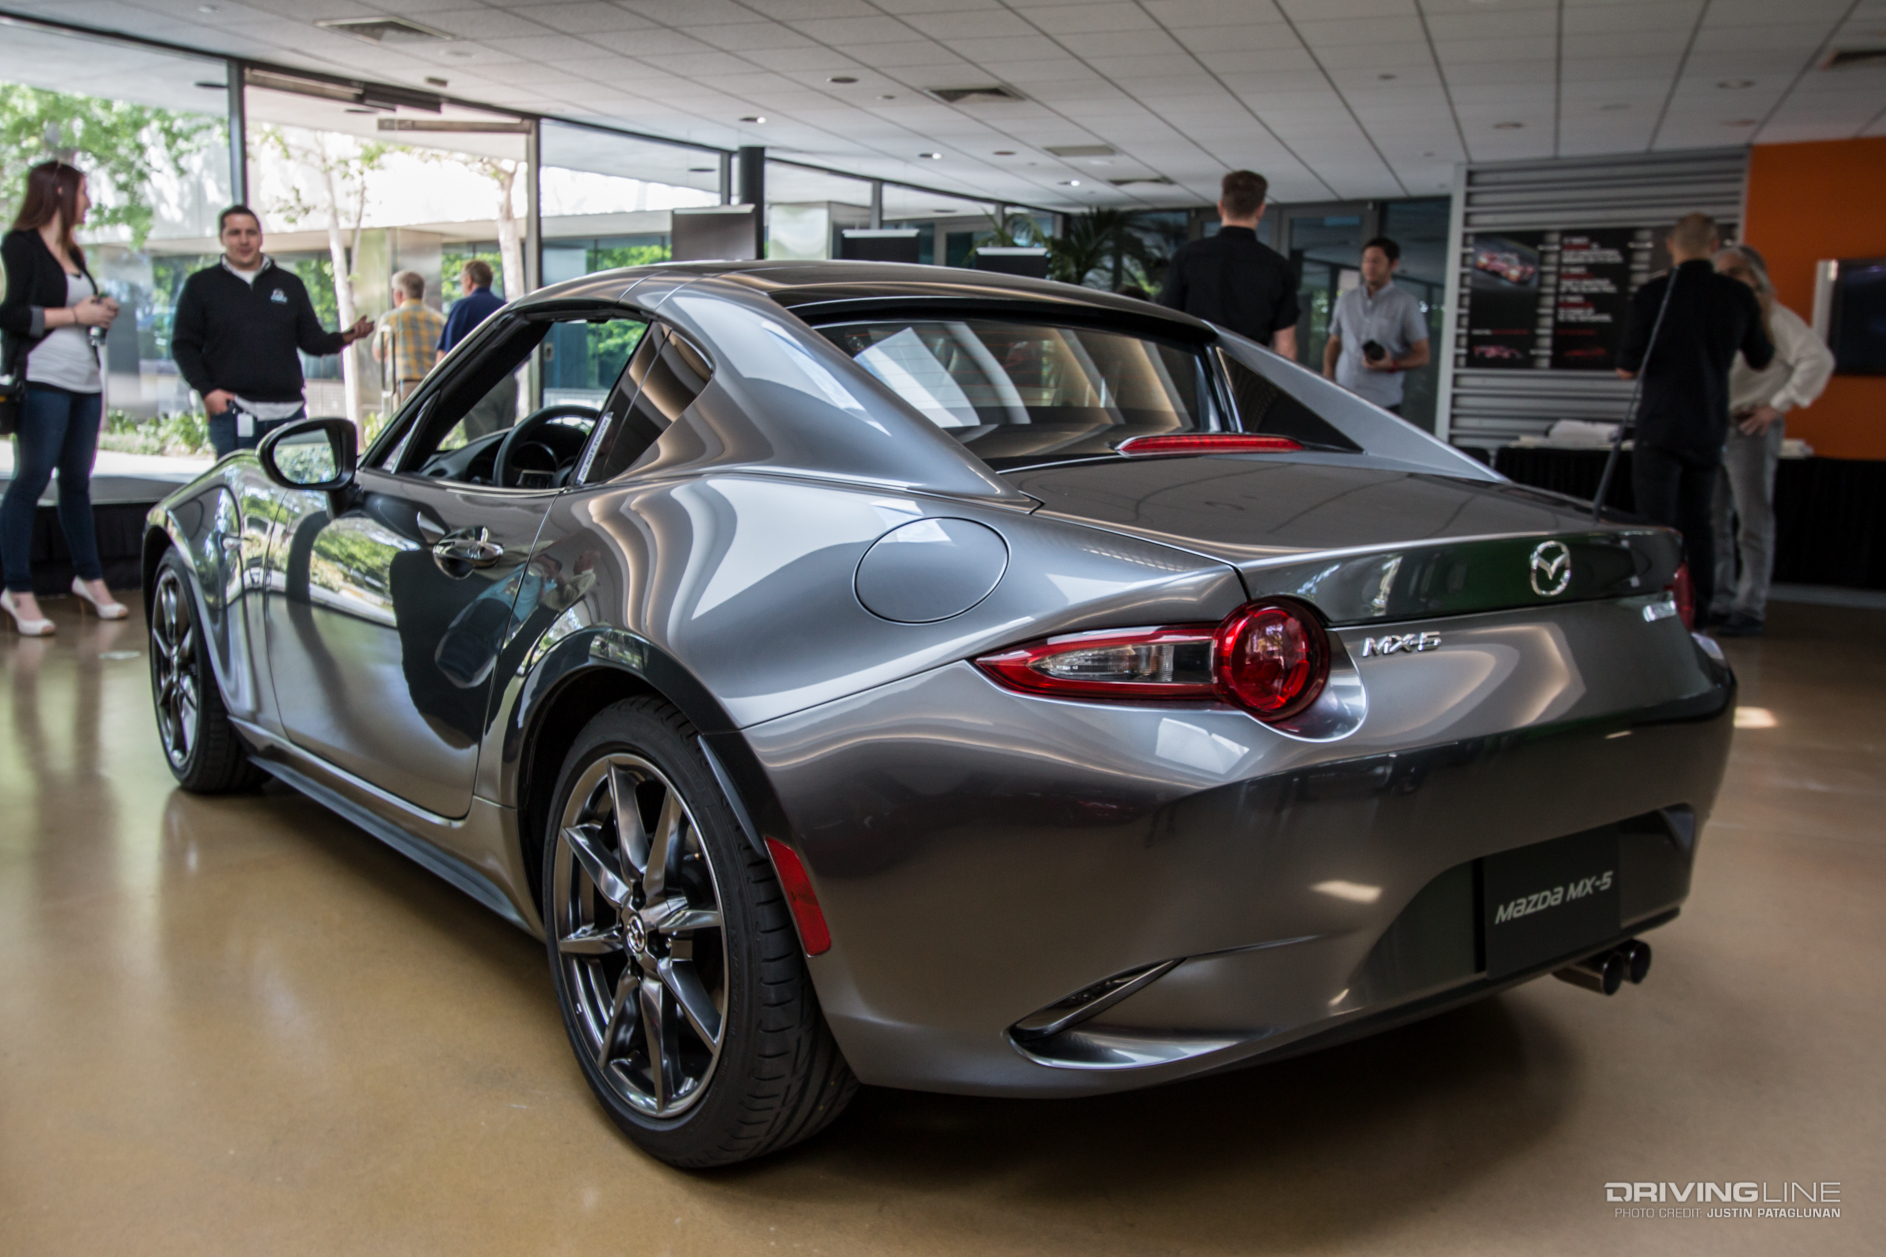 3 Design Questions About The 2017 Mazda Mx 5 Miata Rf